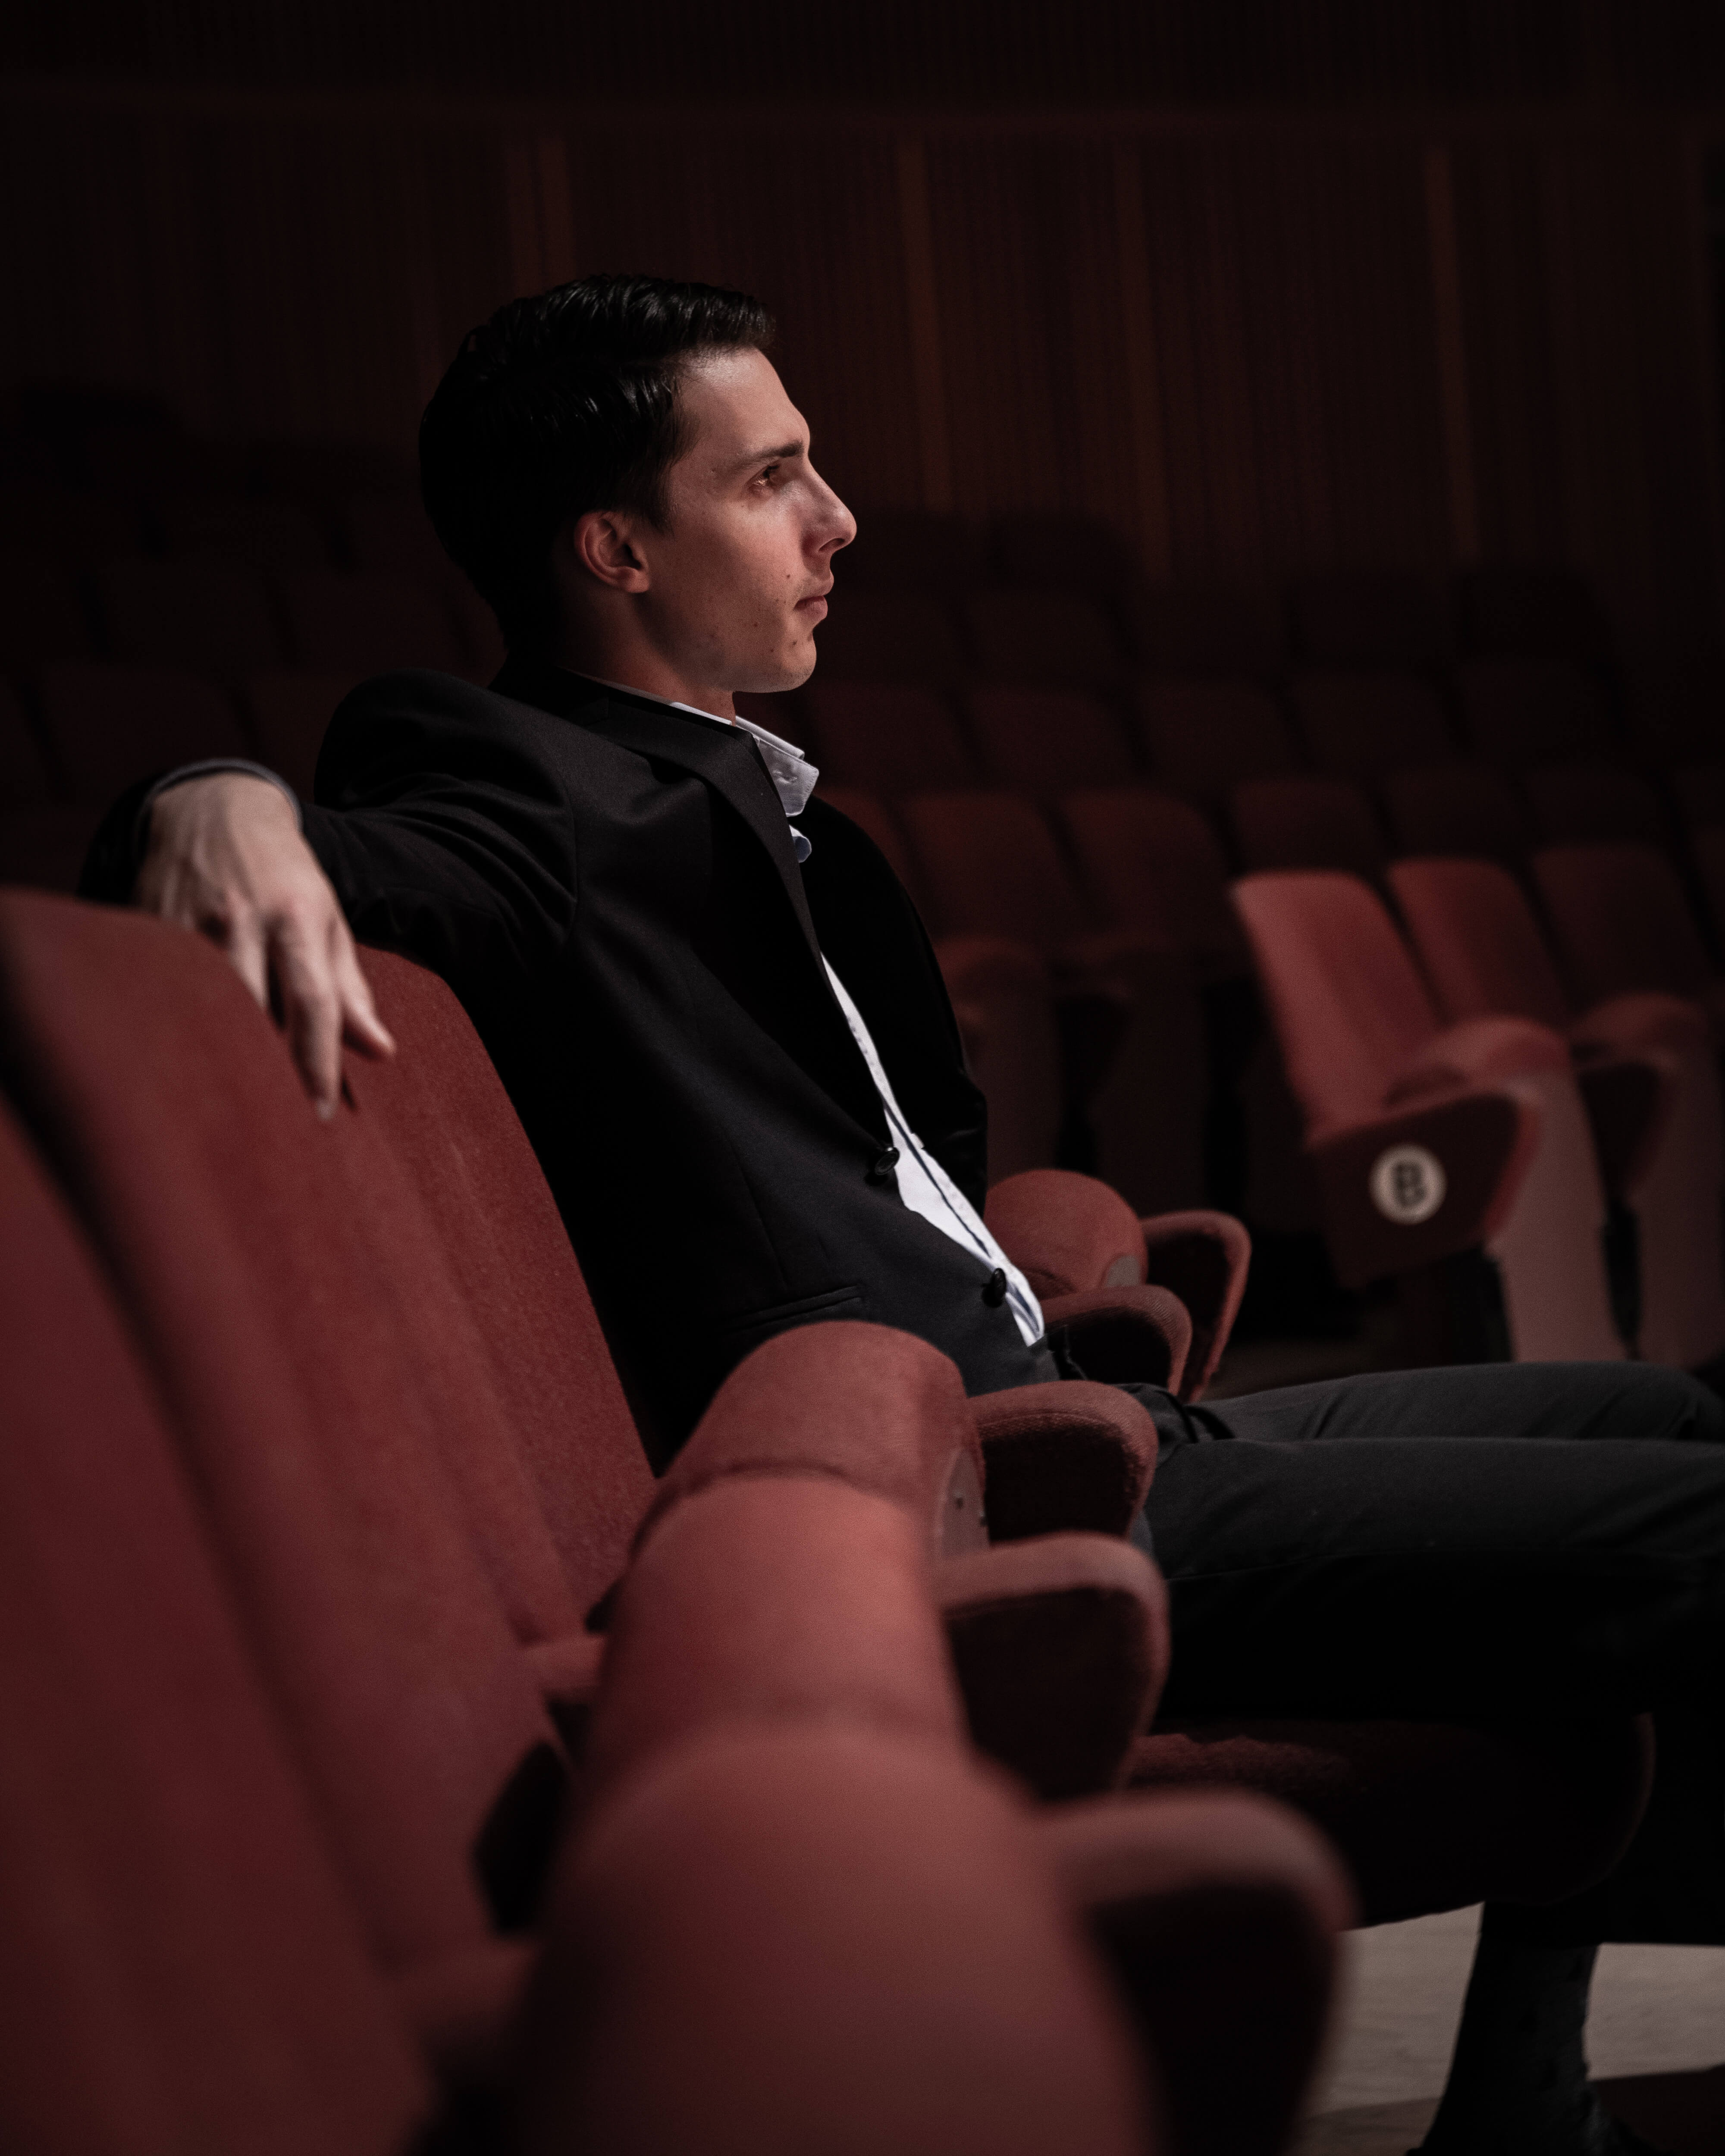 Composer sitting in concert hall with red chairs and black suit.